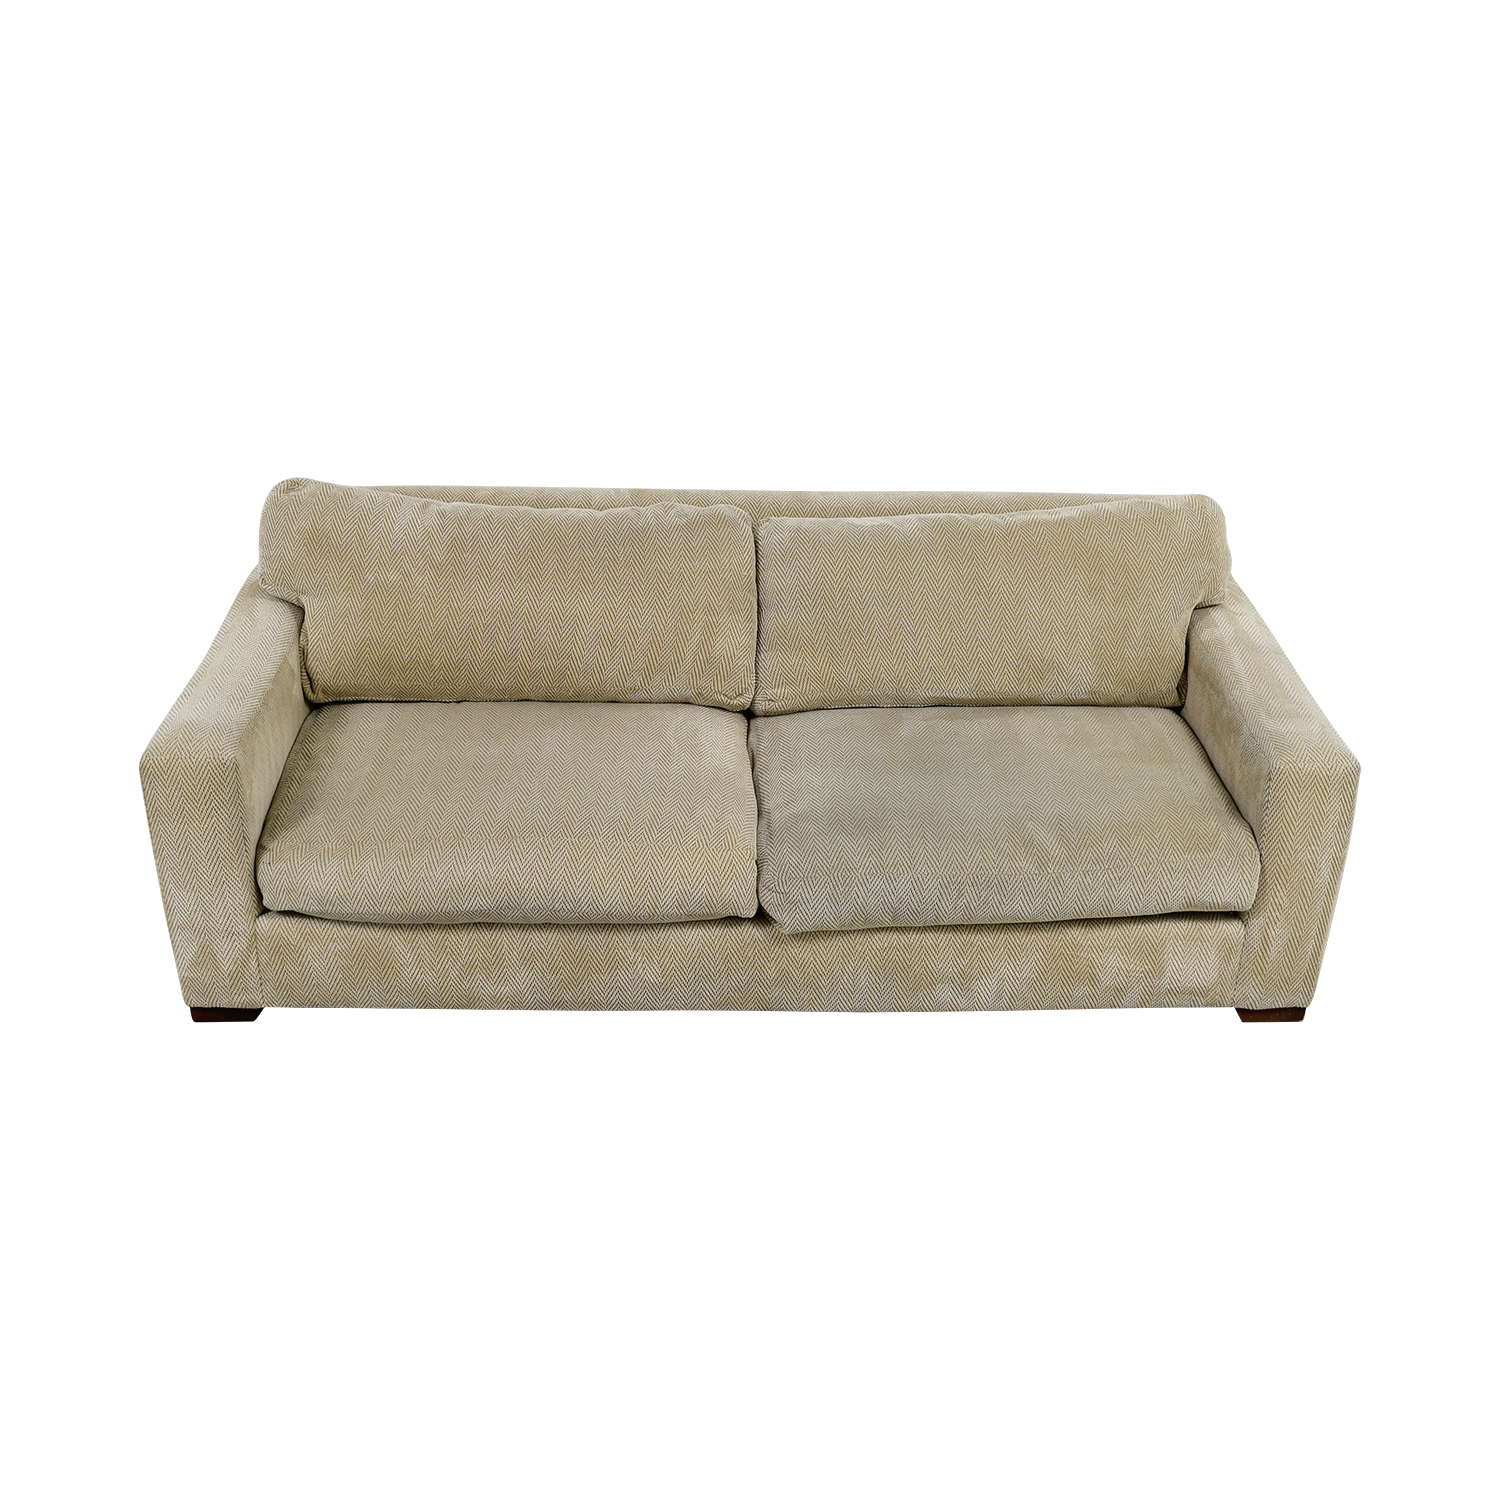 Sofa used used sofa set 7 seater for couch karachi thesofa for Sofa 7 seater